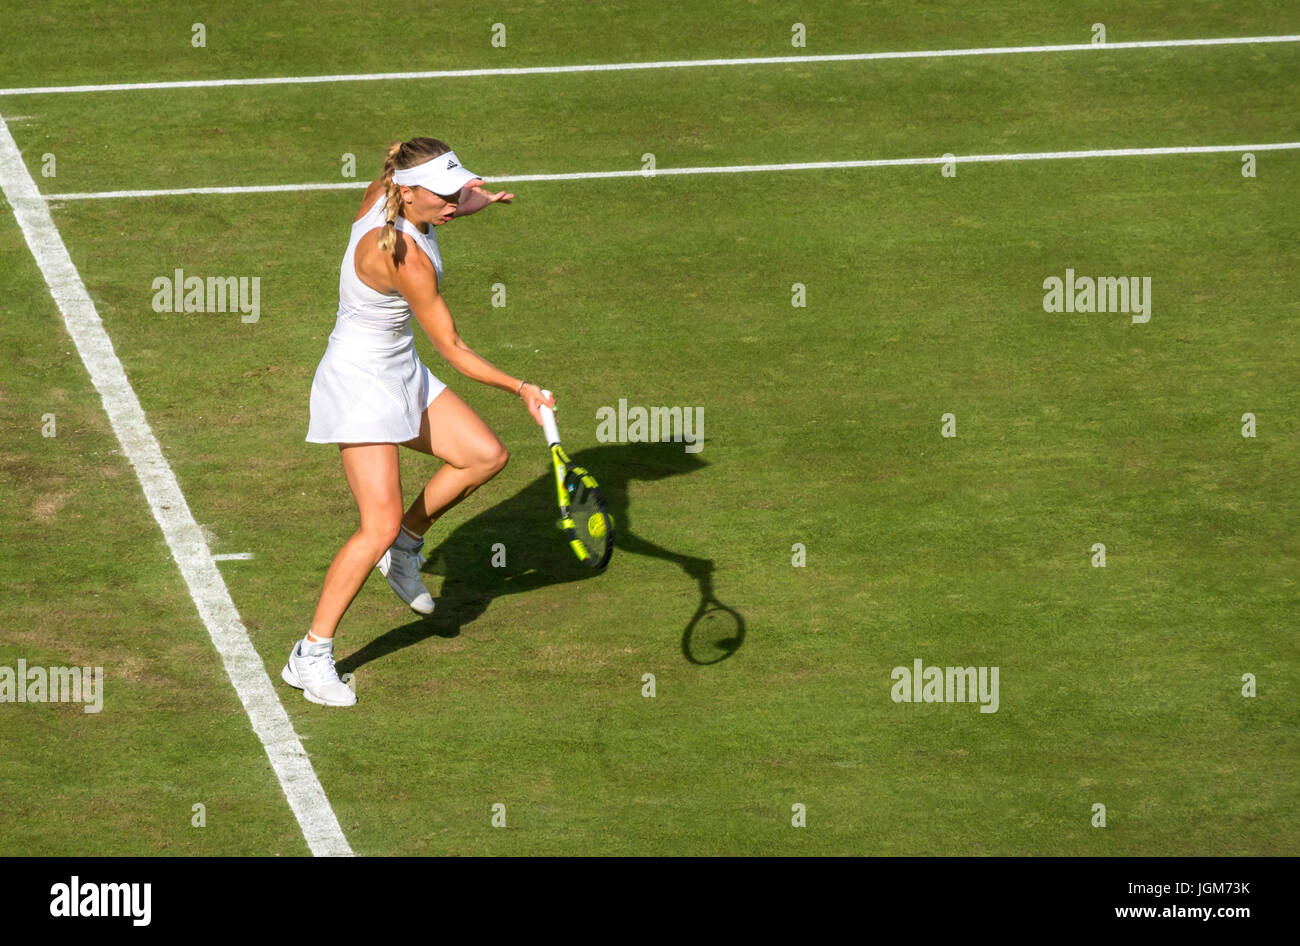 Caroline Wozniacki returns on Centre Court, Wimbledon 2017, ladies singles match, grand slam tennis champIonship, - Stock Image